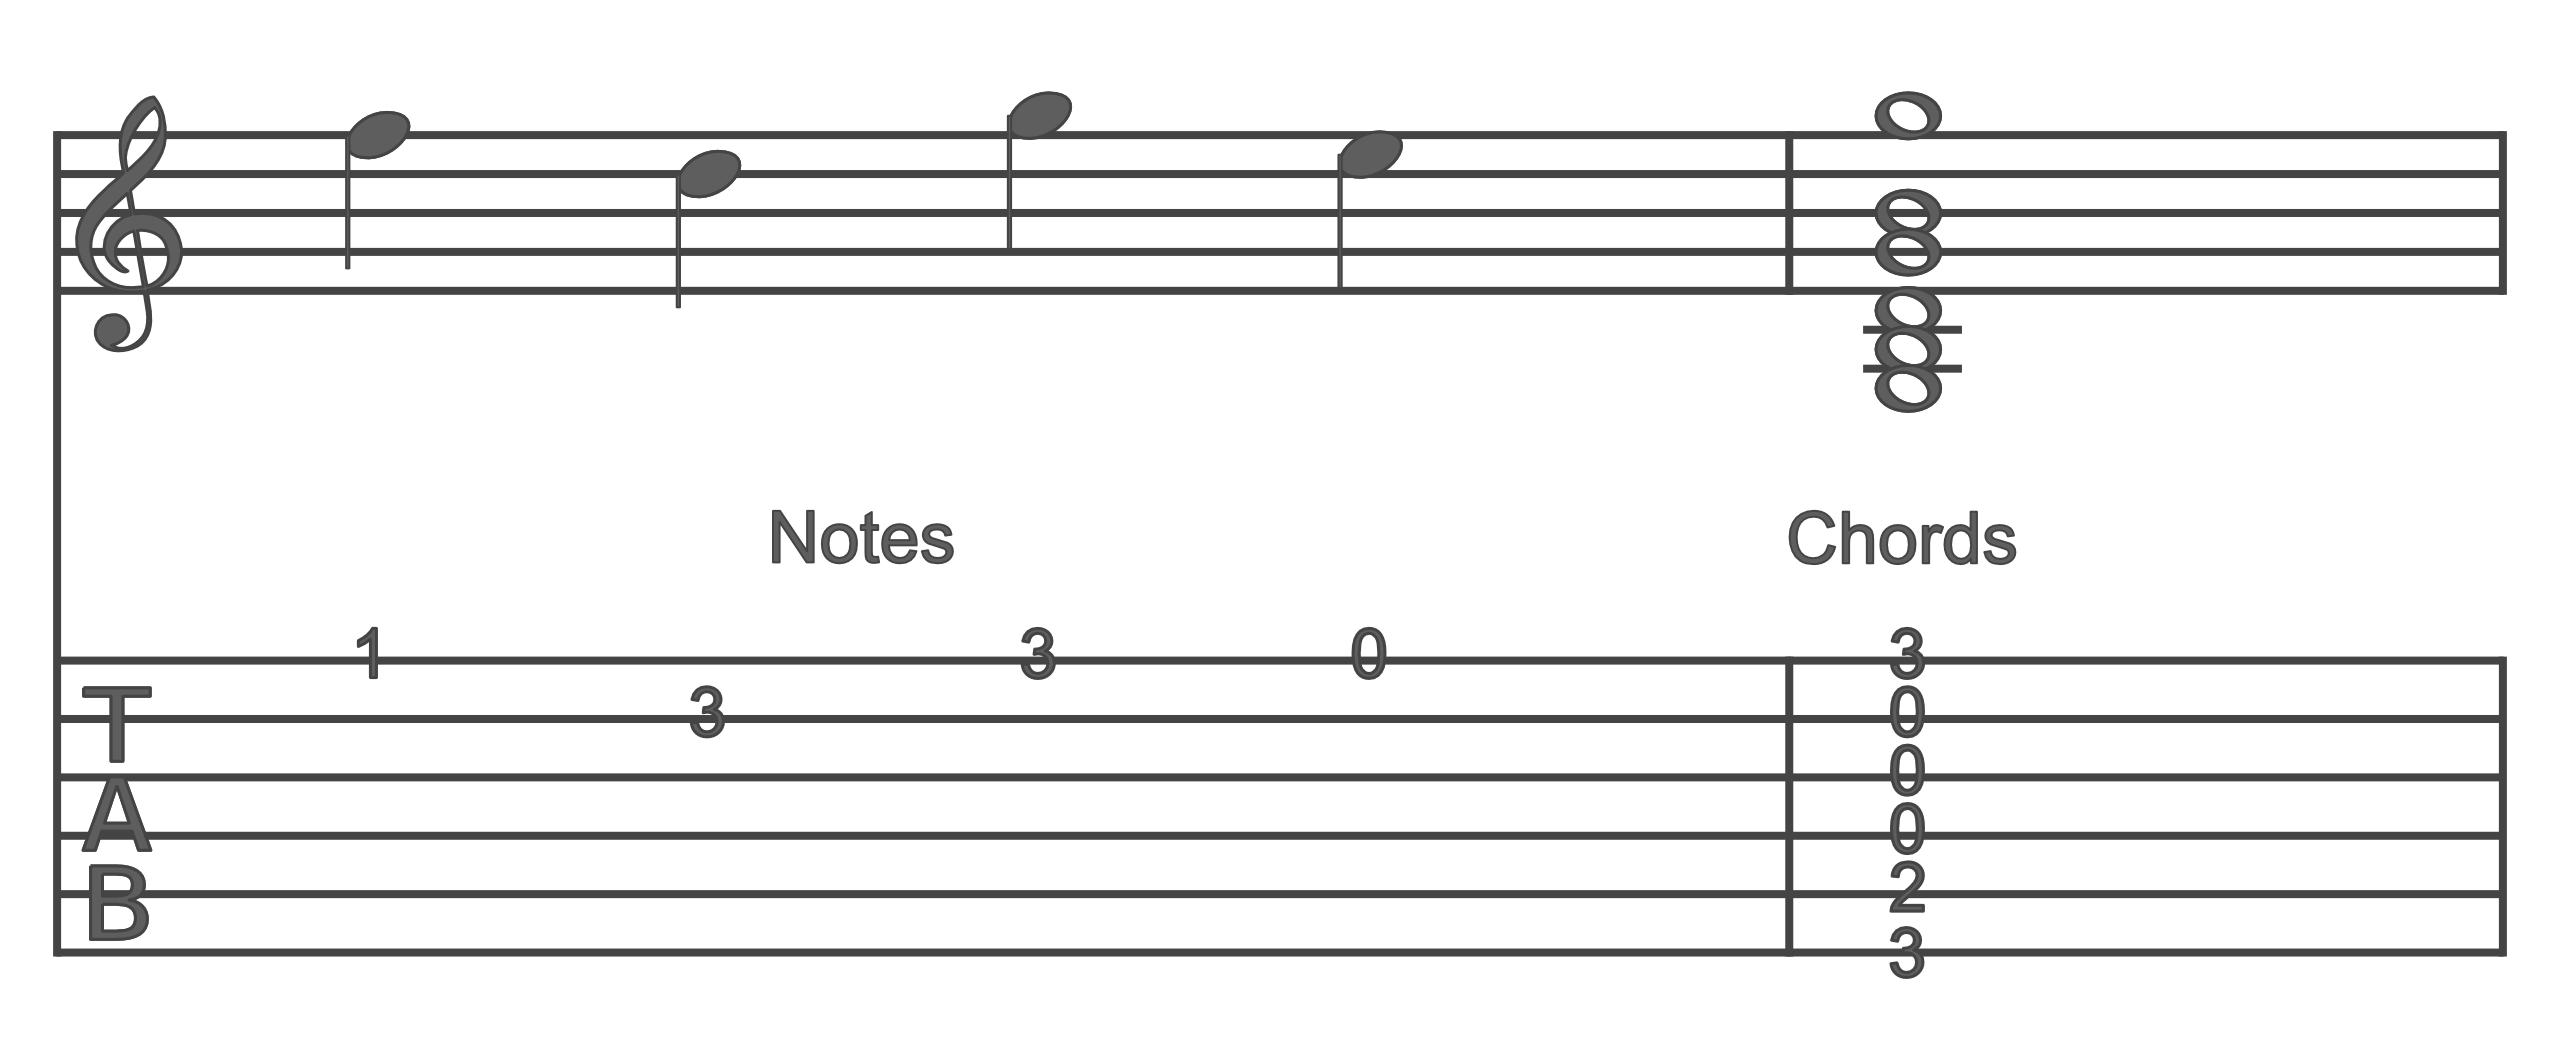 Tab Notes & Chords